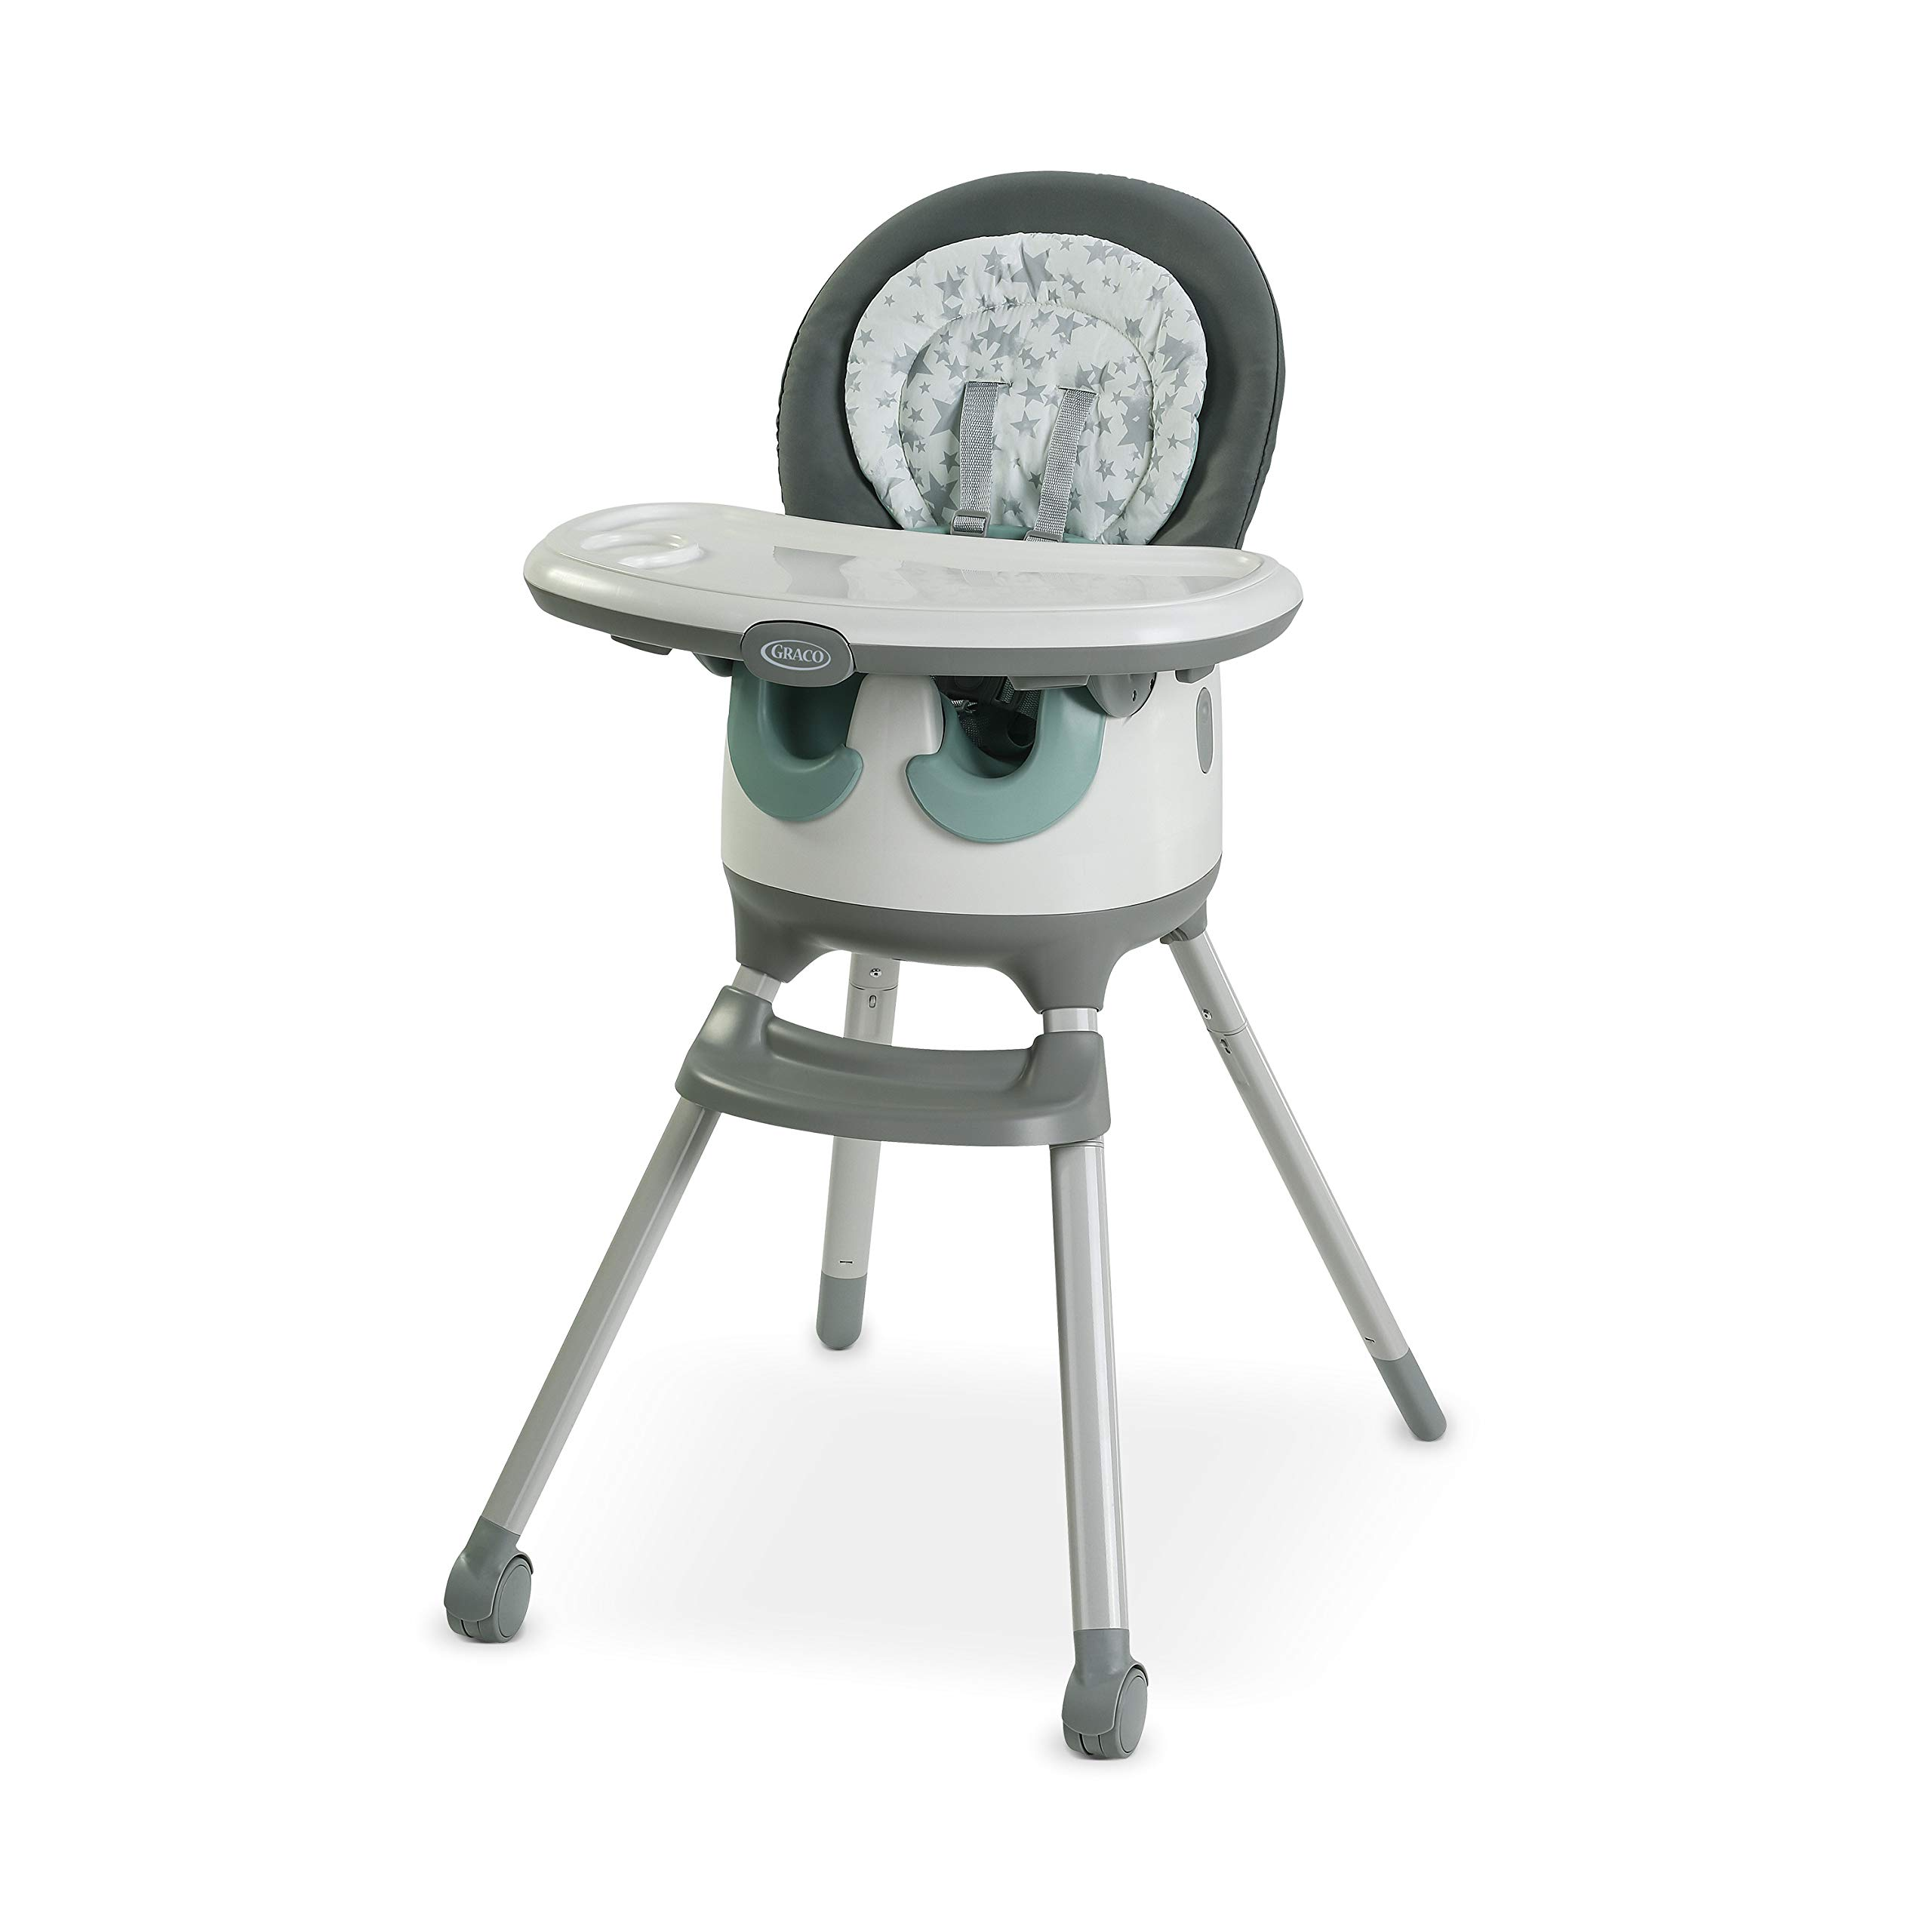 Graco Floor2Table 7 in 1 High Chair | Converts to an Infant Floor Seat, Booster Seat, Kids Table and More, Oskar by Graco